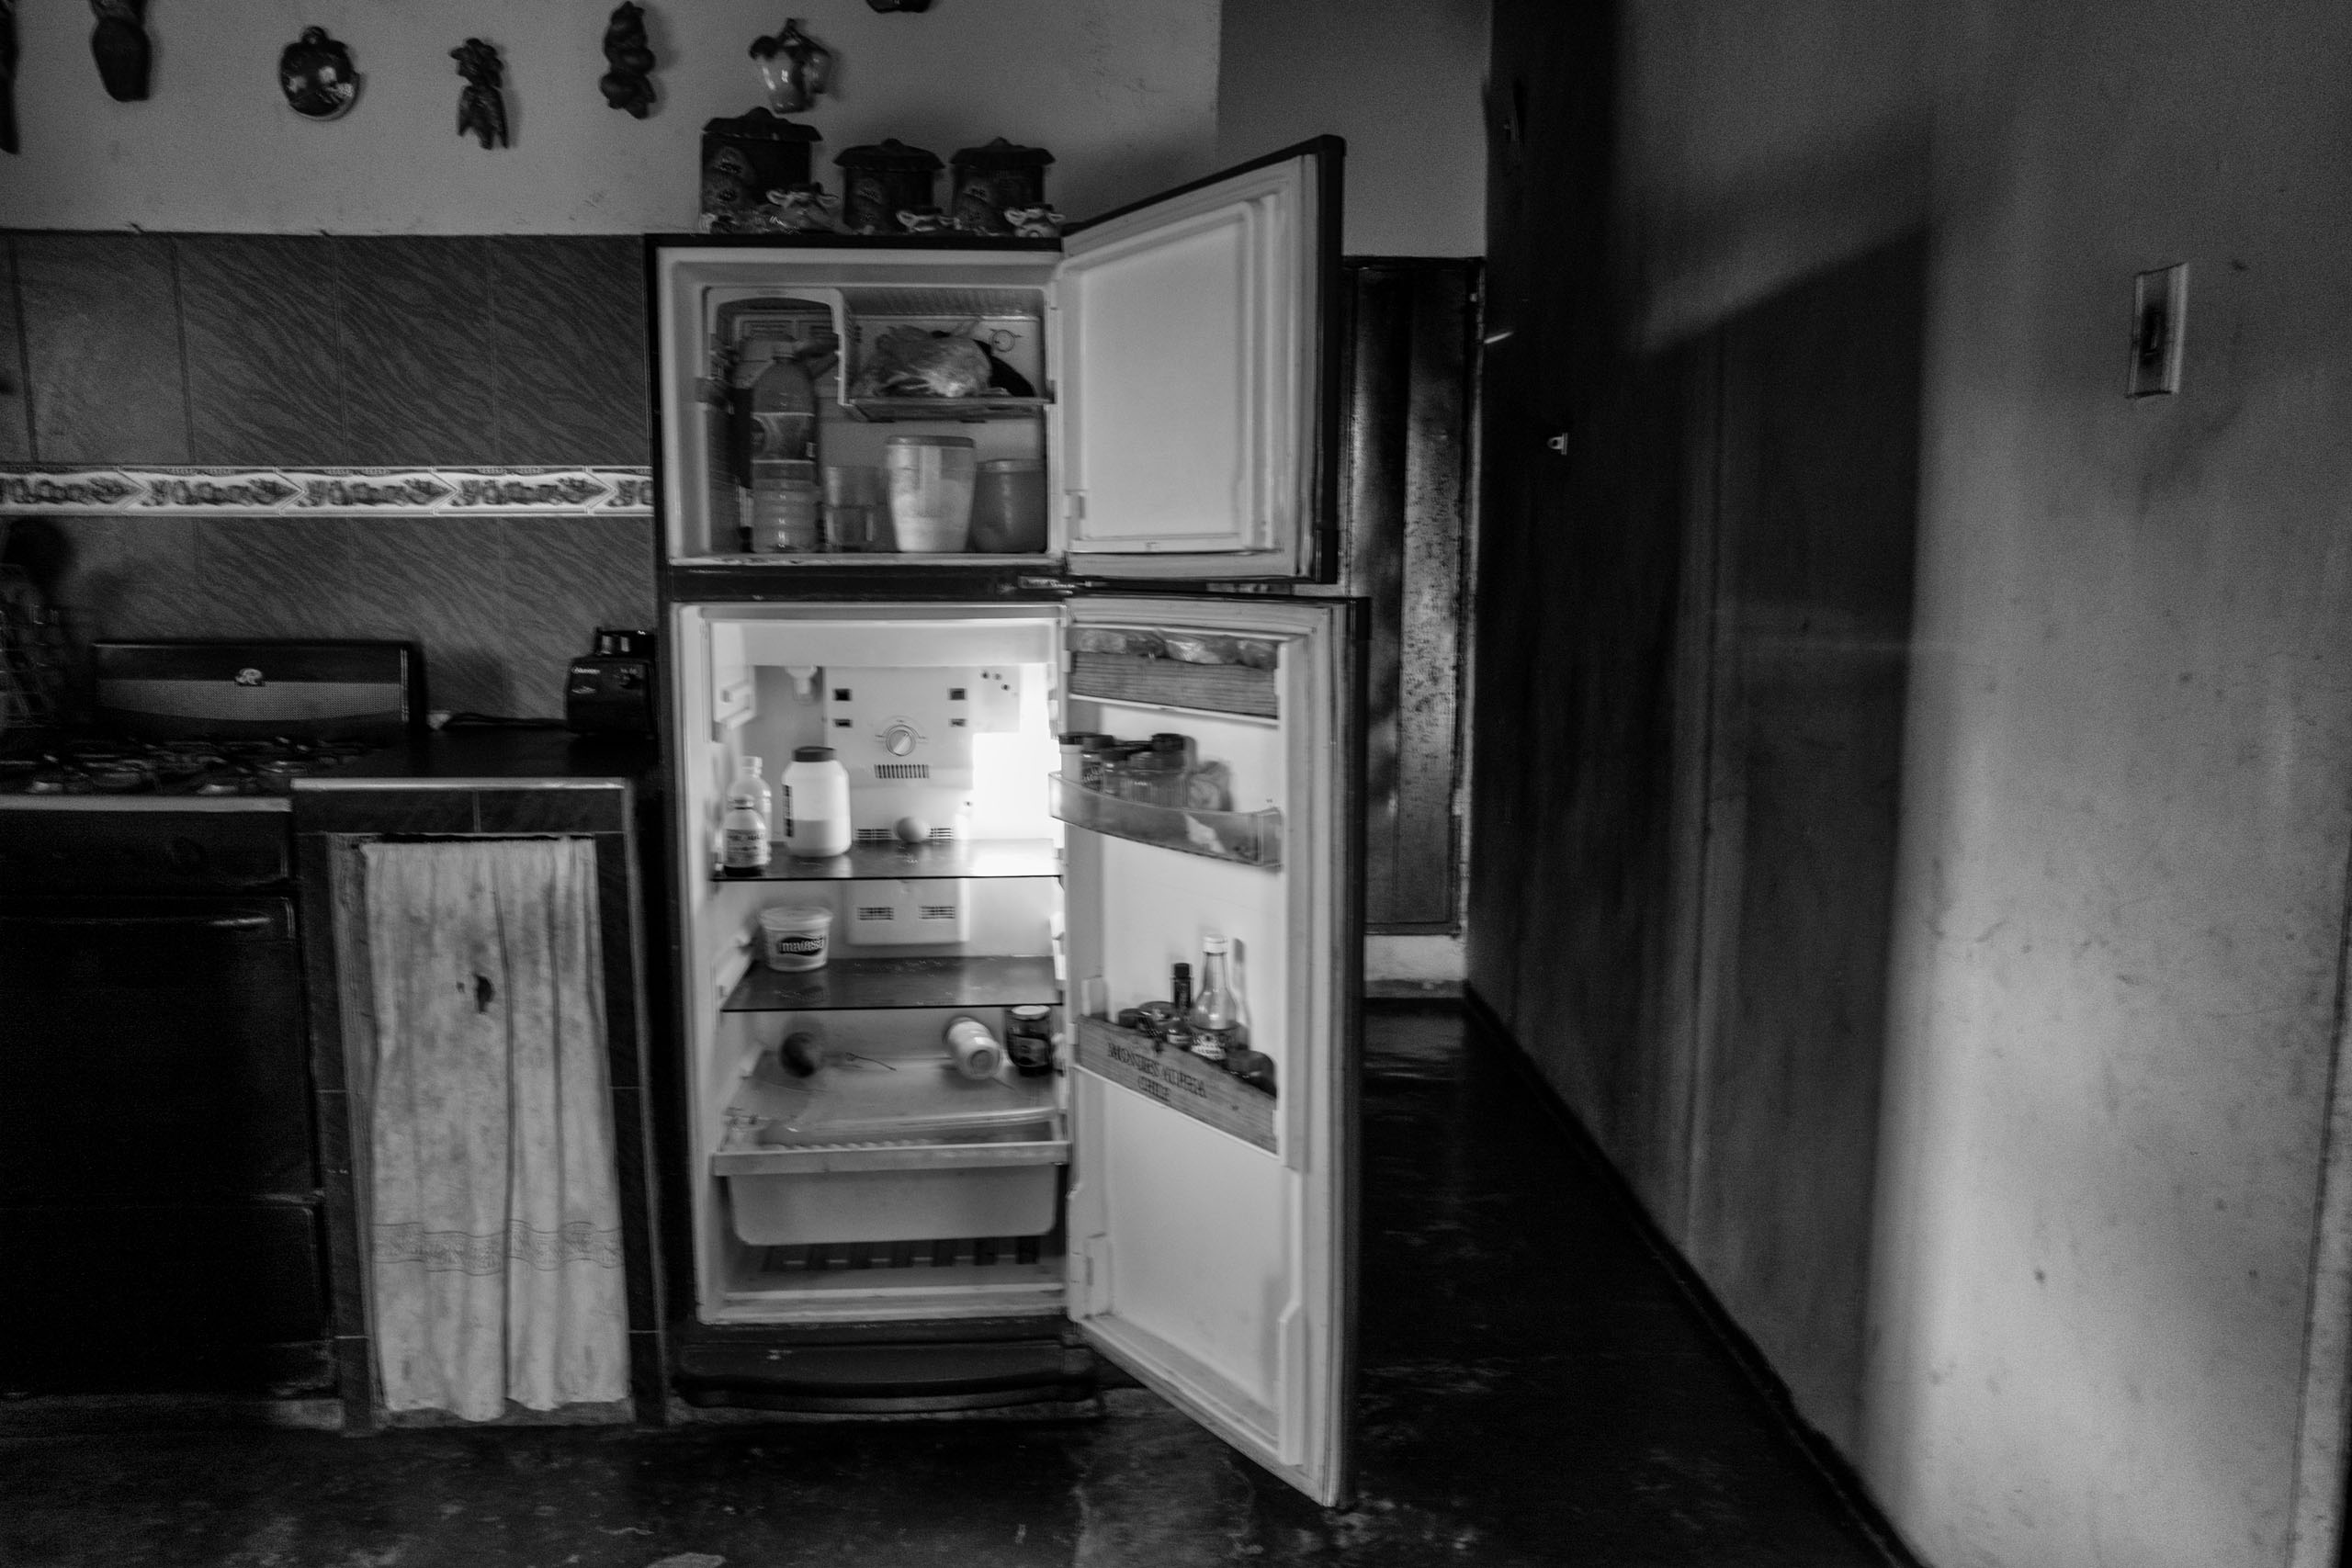 Severe food shortages often result in bare refrigerators, like this one in the home of Don Jose Luis, Barquisimeto, Venezuela, June 2016.